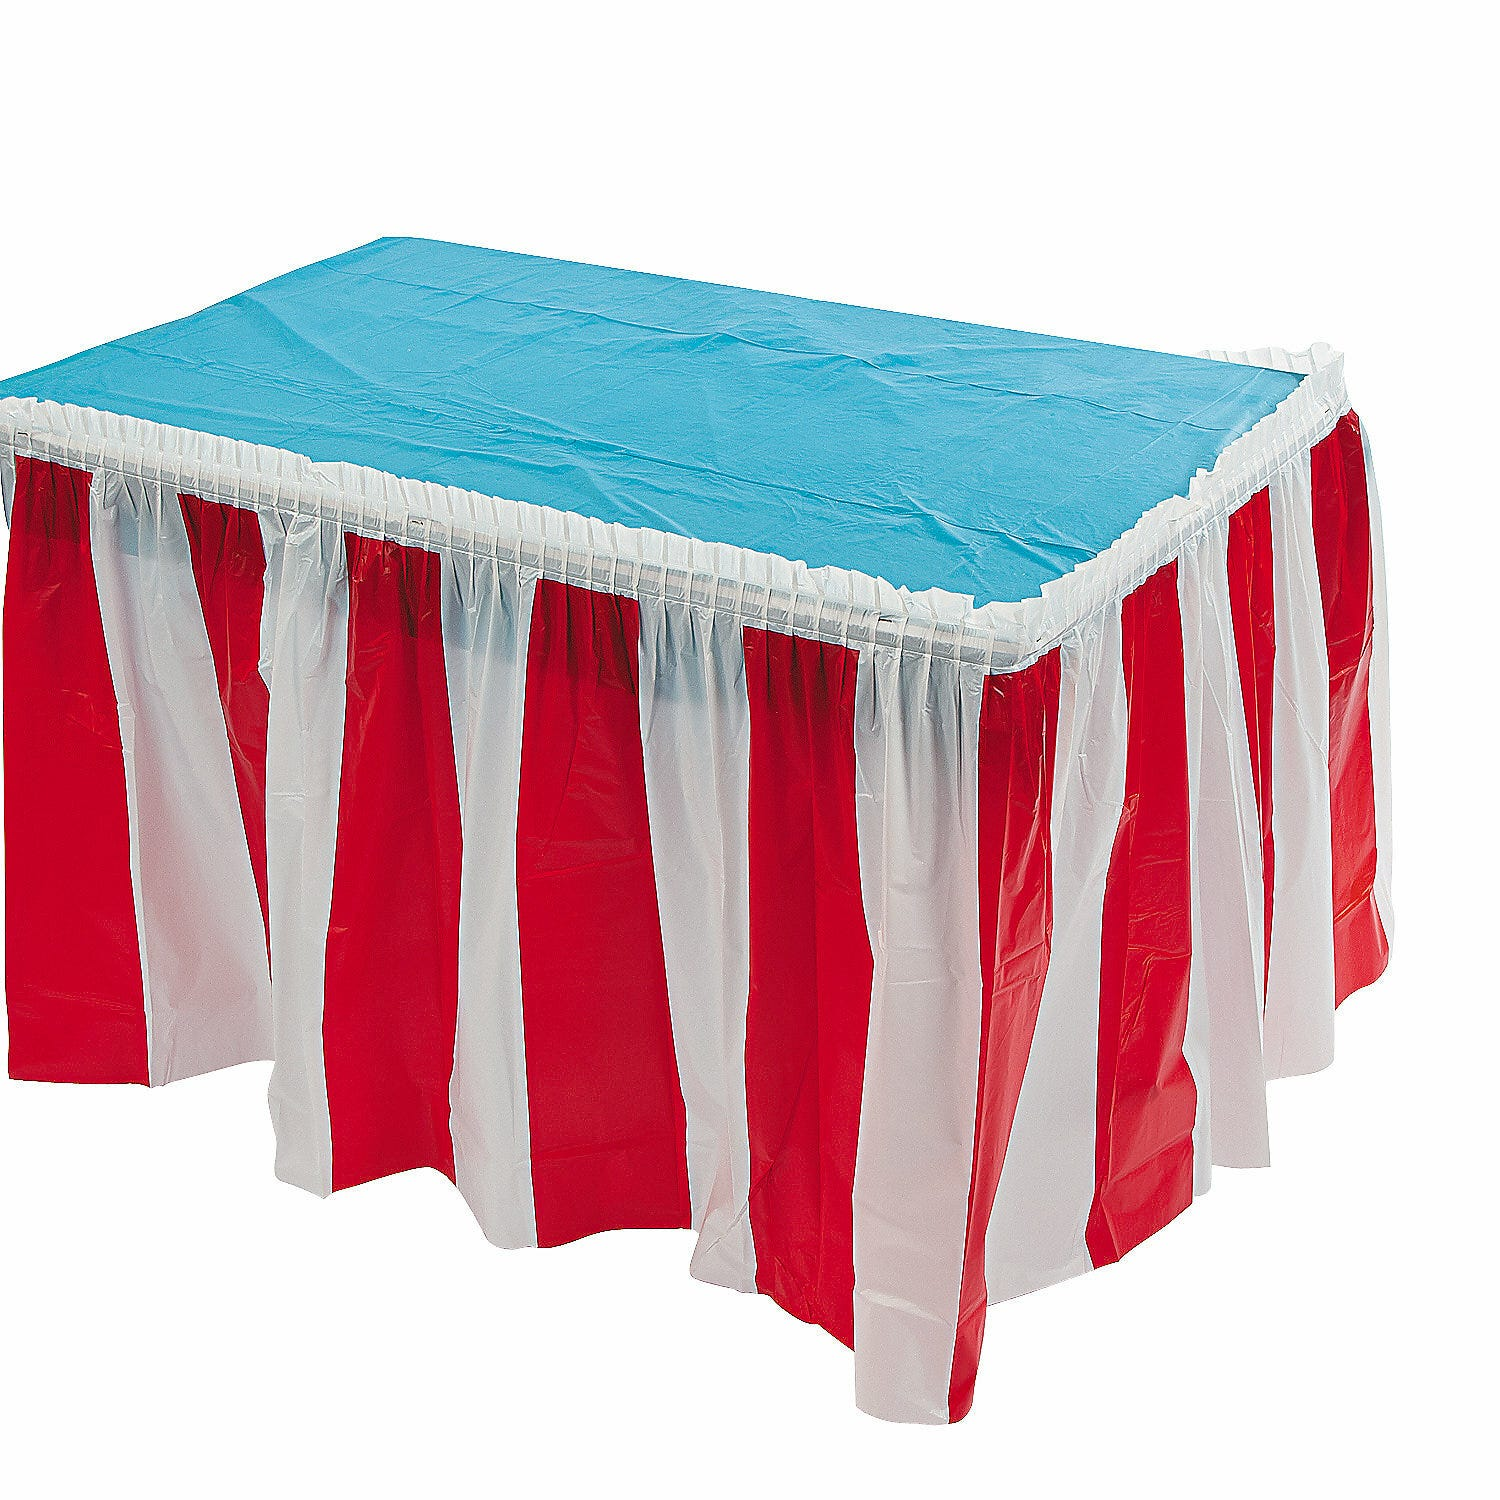 Red white striped circus carnival party supplies plastic for Table skirting